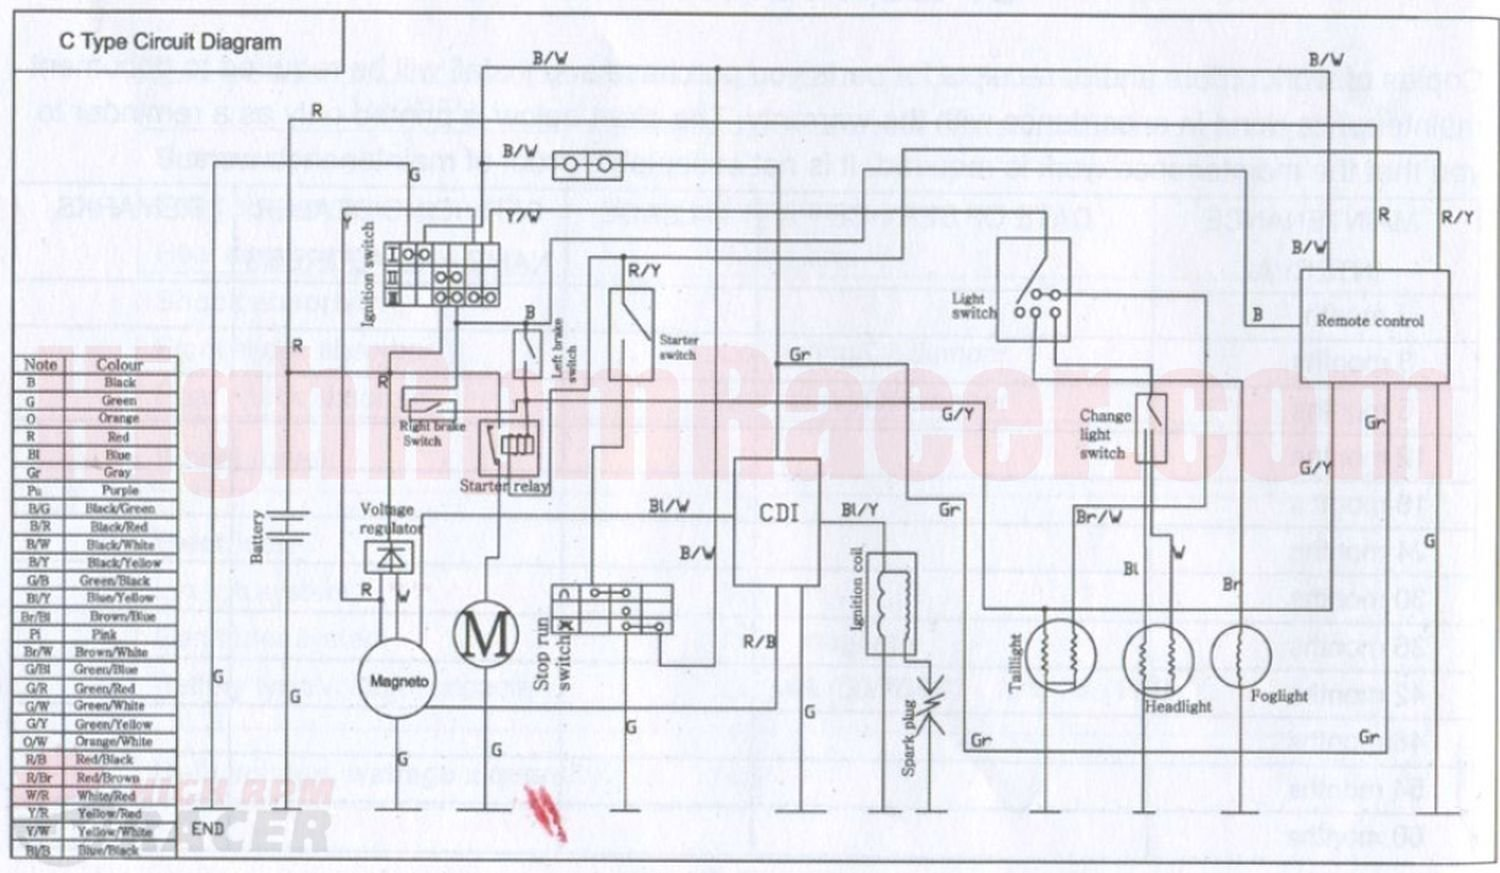 buyang50c_wd buyang atv 50 wiring diagram $0 00 2006 baja 90 atv wiring diagram at crackthecode.co